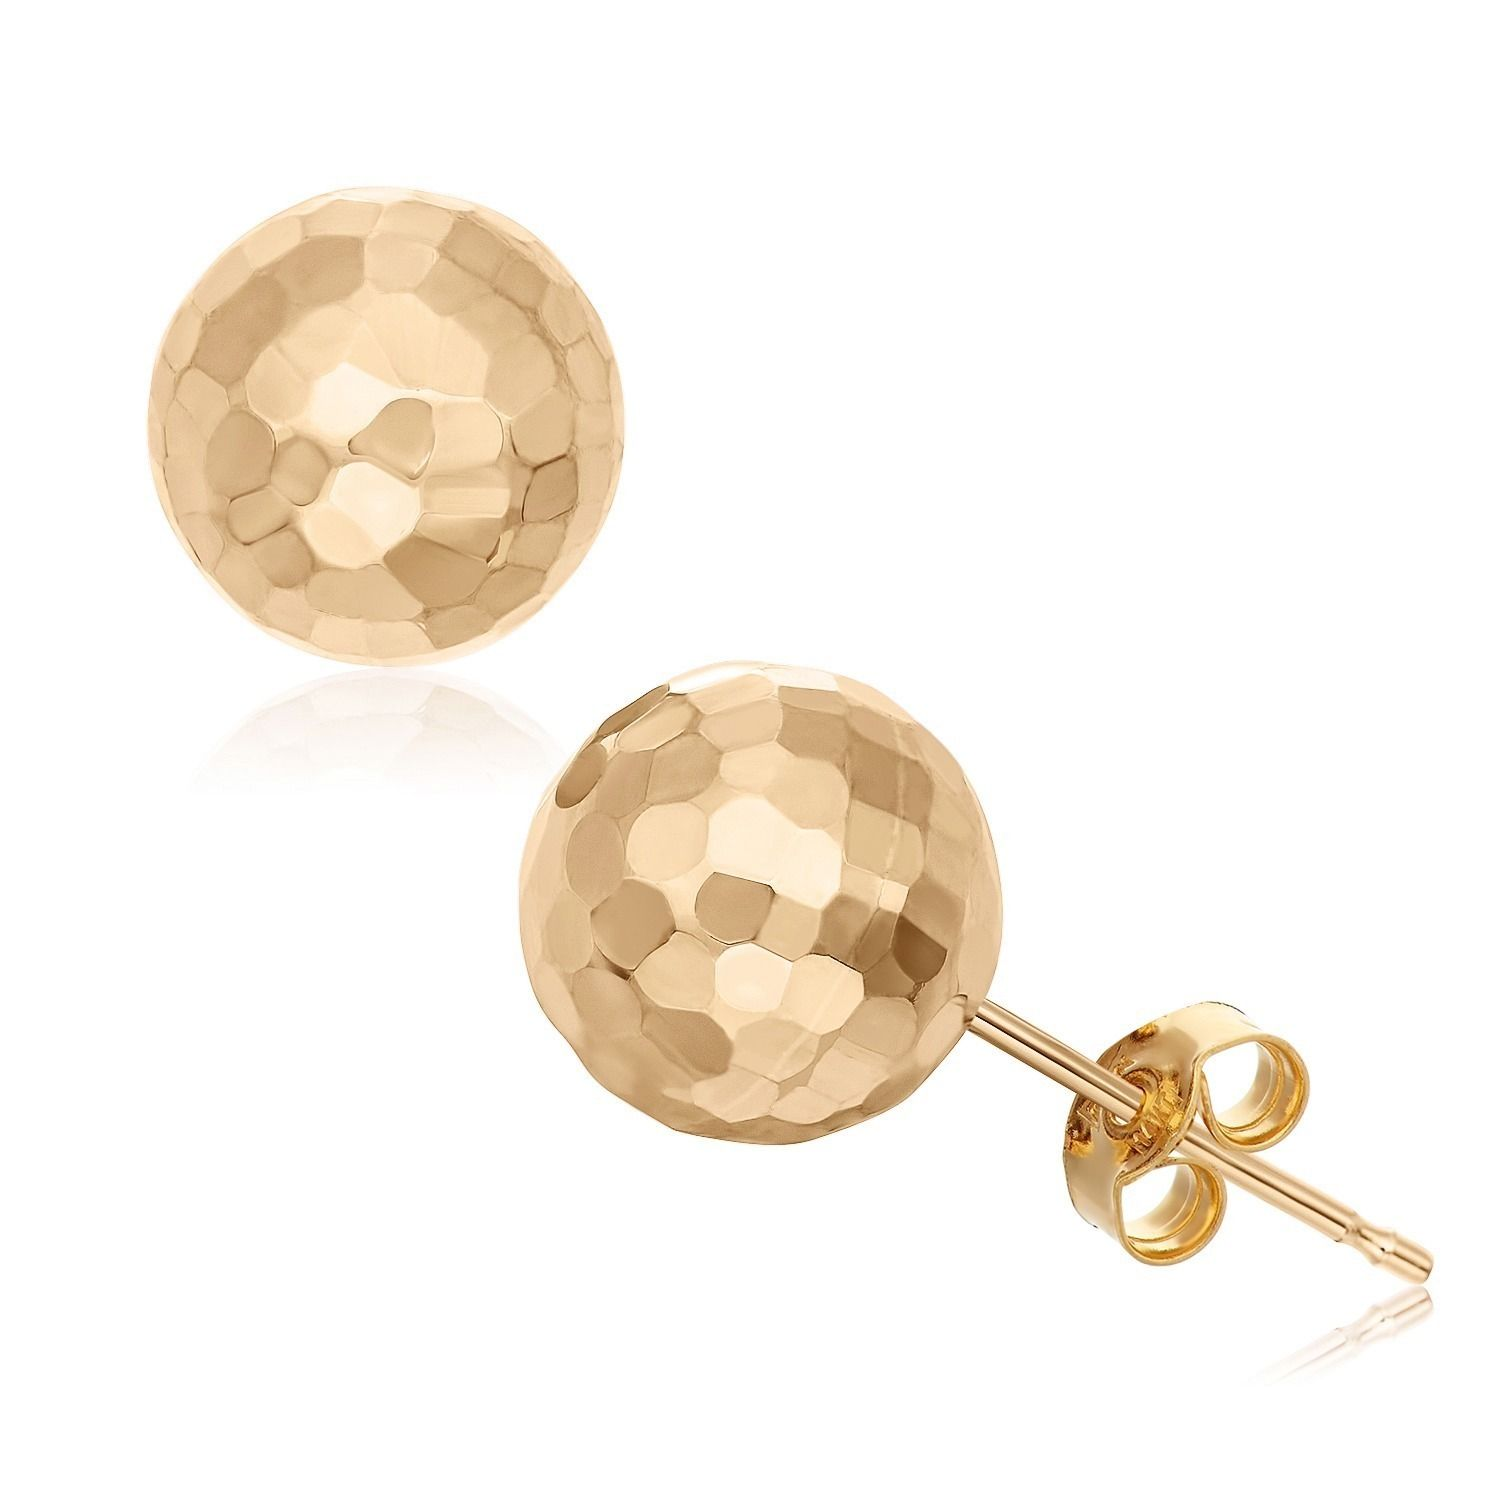 These stud earrings by Gioelli offer hammered ball designs on classic post backs. Butterfly clasps secure these charming earrings, available in your choice of 14-karat yellow, white or rose gold options.